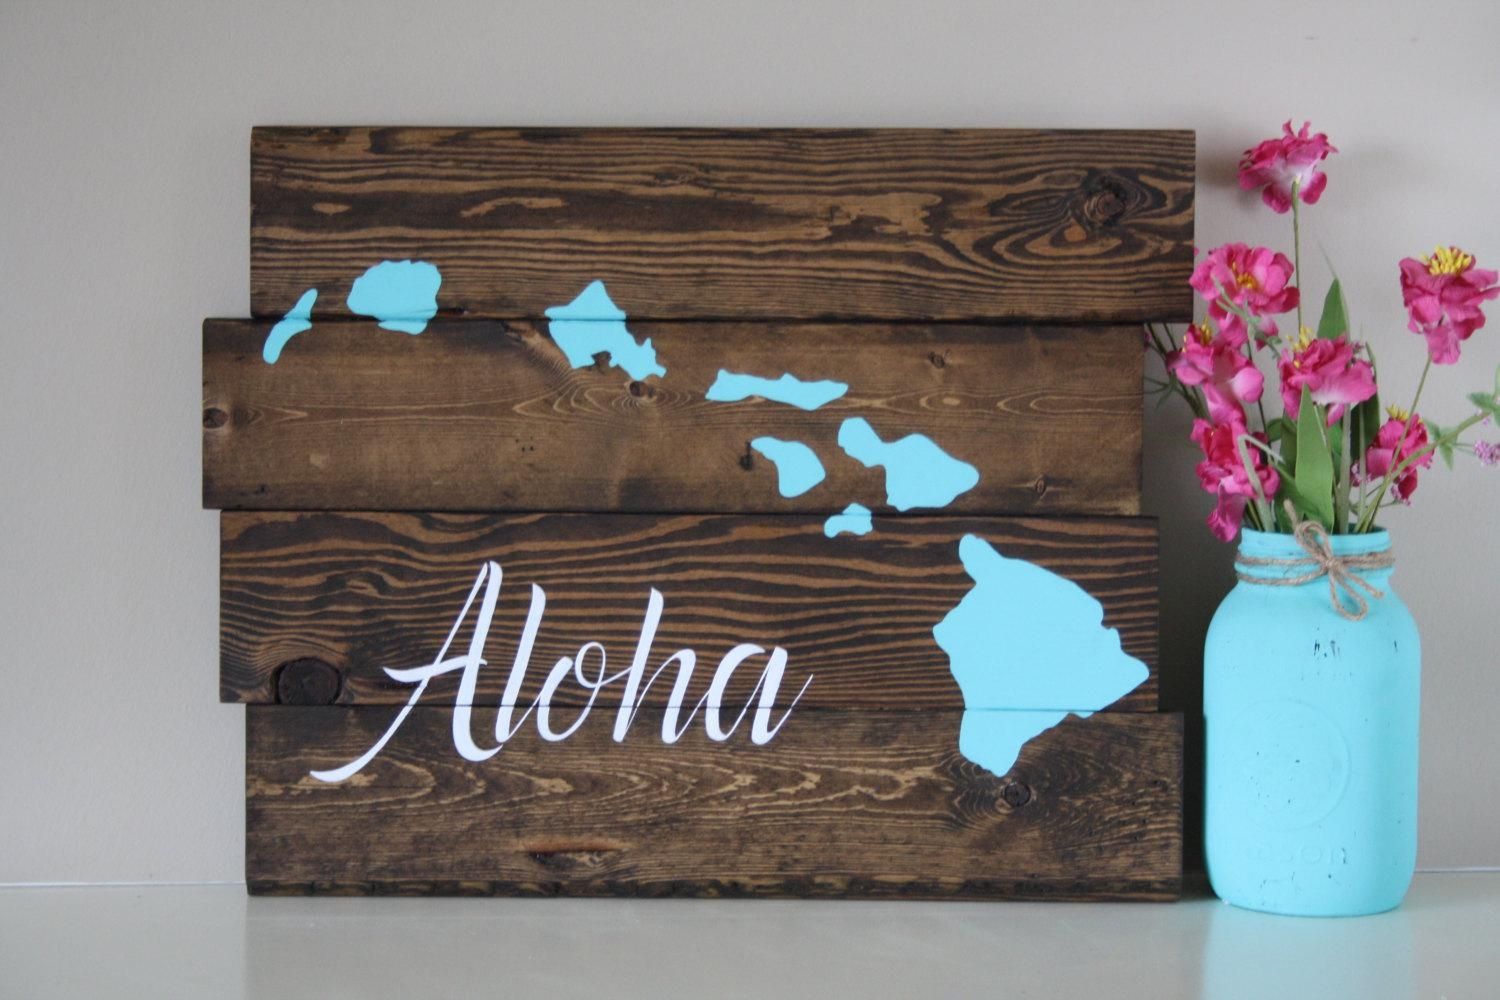 Reclaimed Wood Wall Art Aloha Hawaiian Island Reclaimed In Hawaiian Wall Art (View 9 of 20)